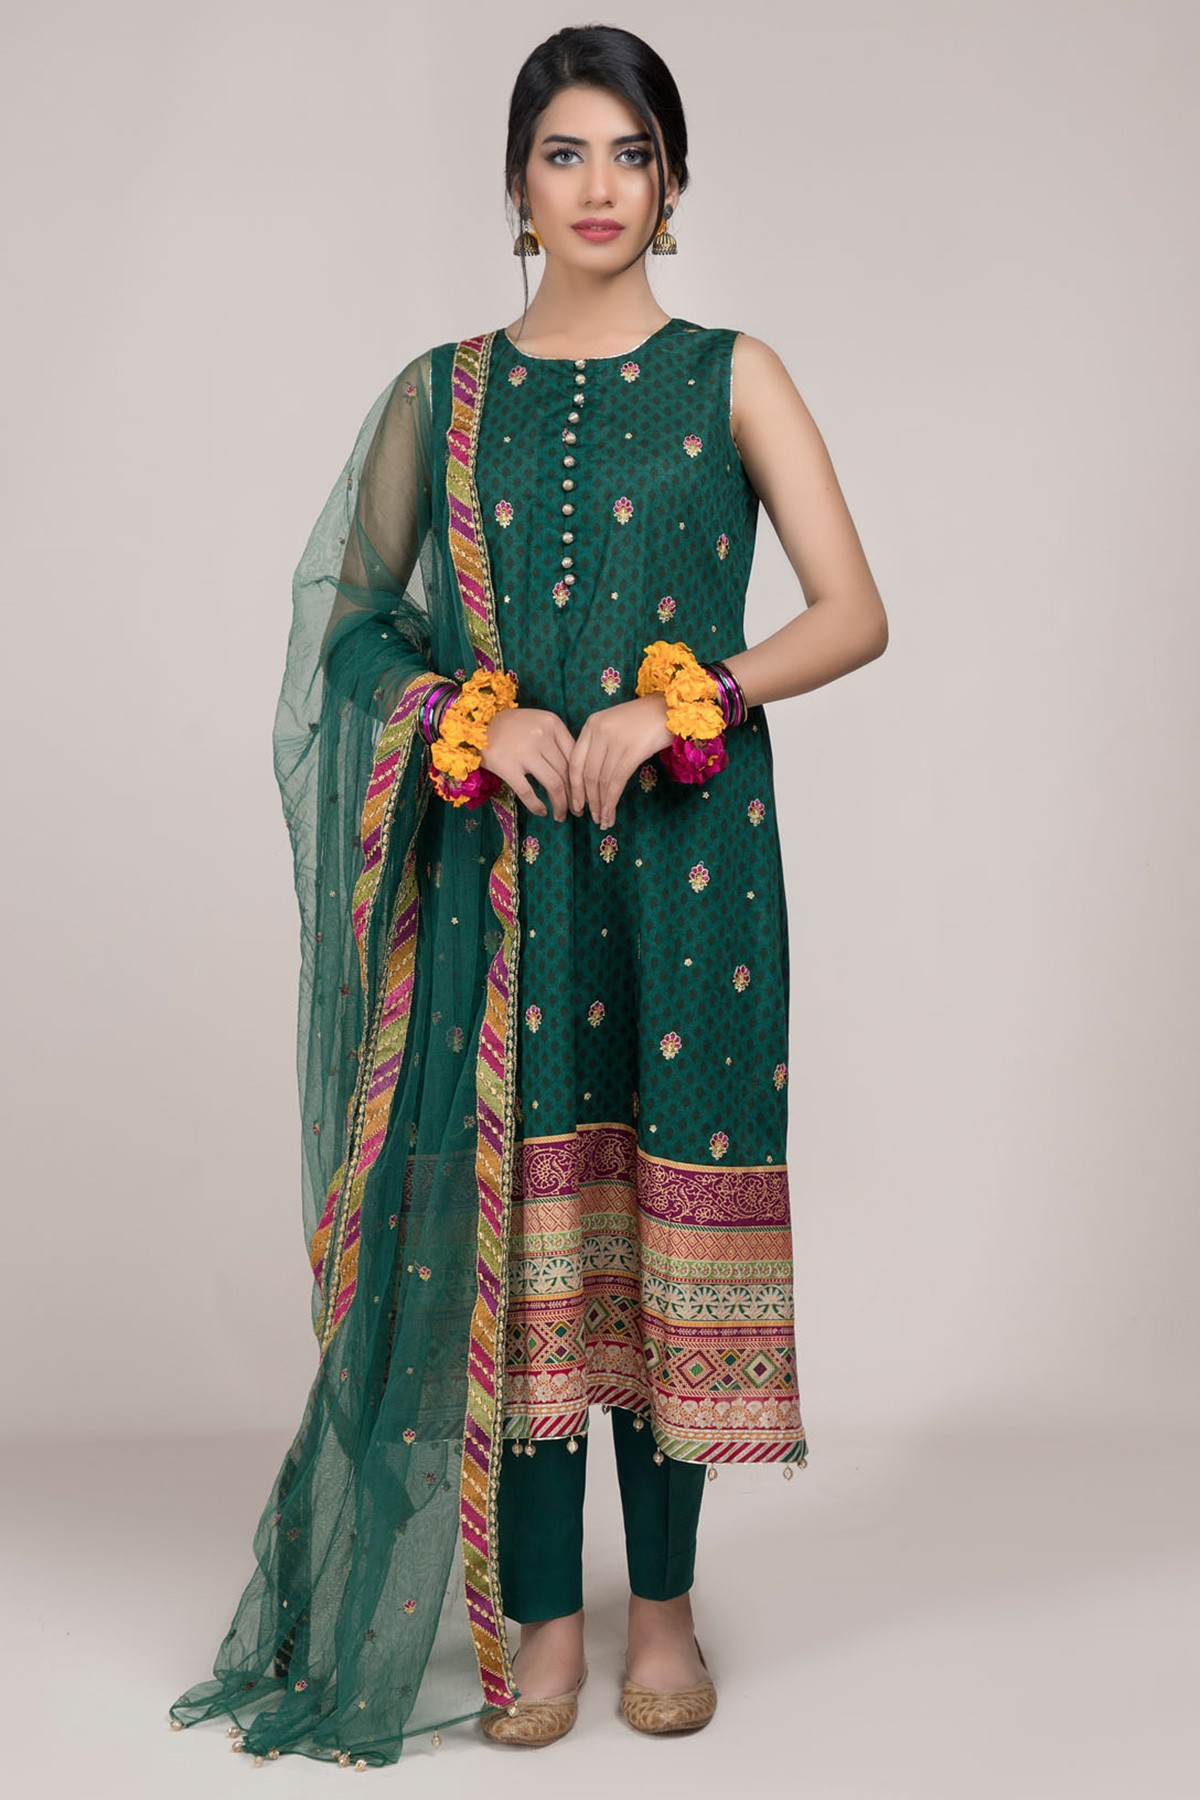 Summer Embroidered Embellished Lawn Dresses